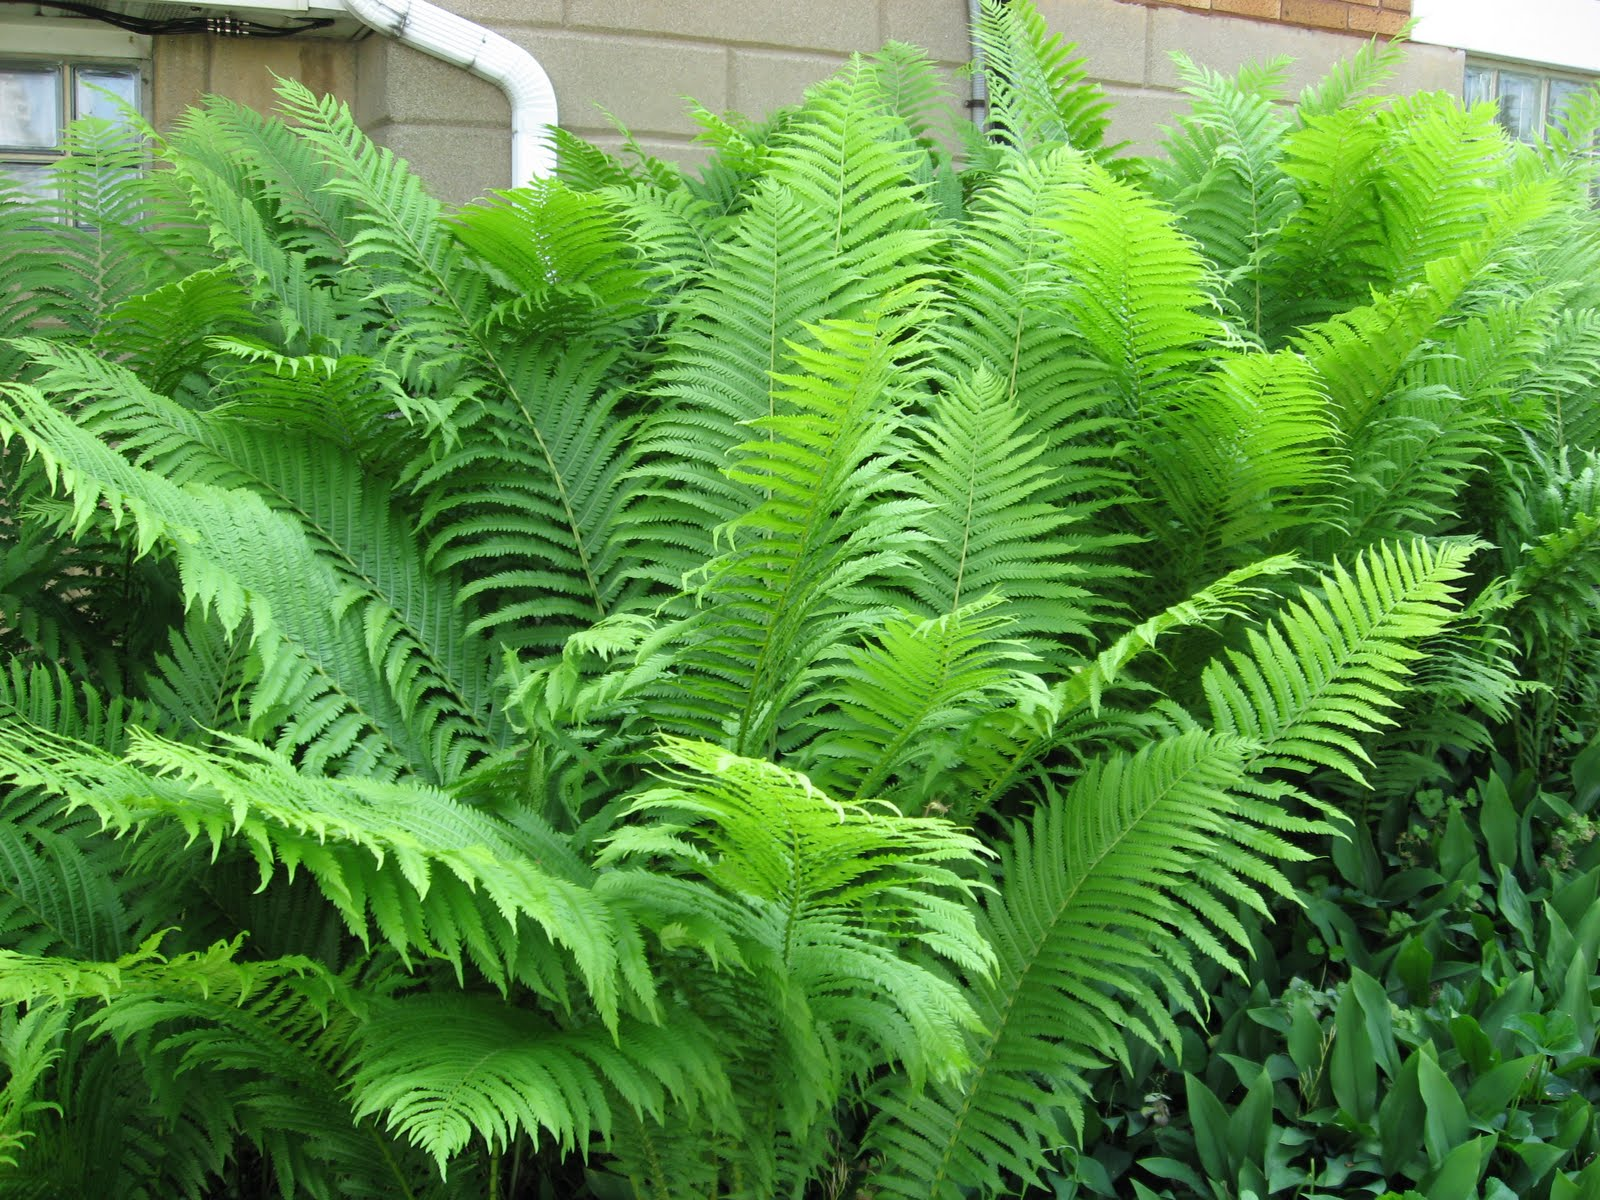 A j rahn greenhouses ostrich ferns for Green plants for garden